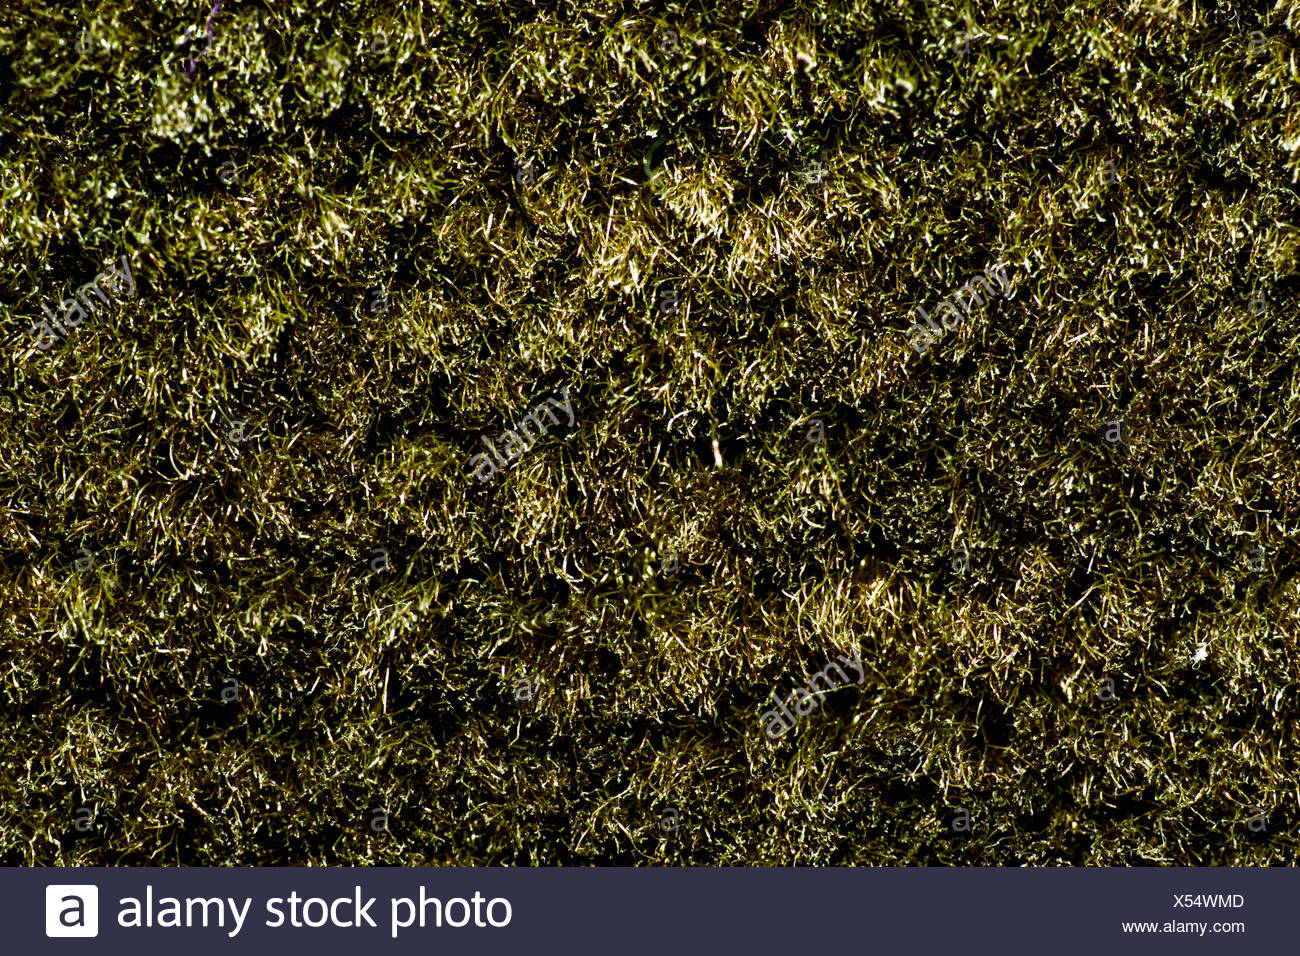 texture of brown carpet with long pile - Stock Image